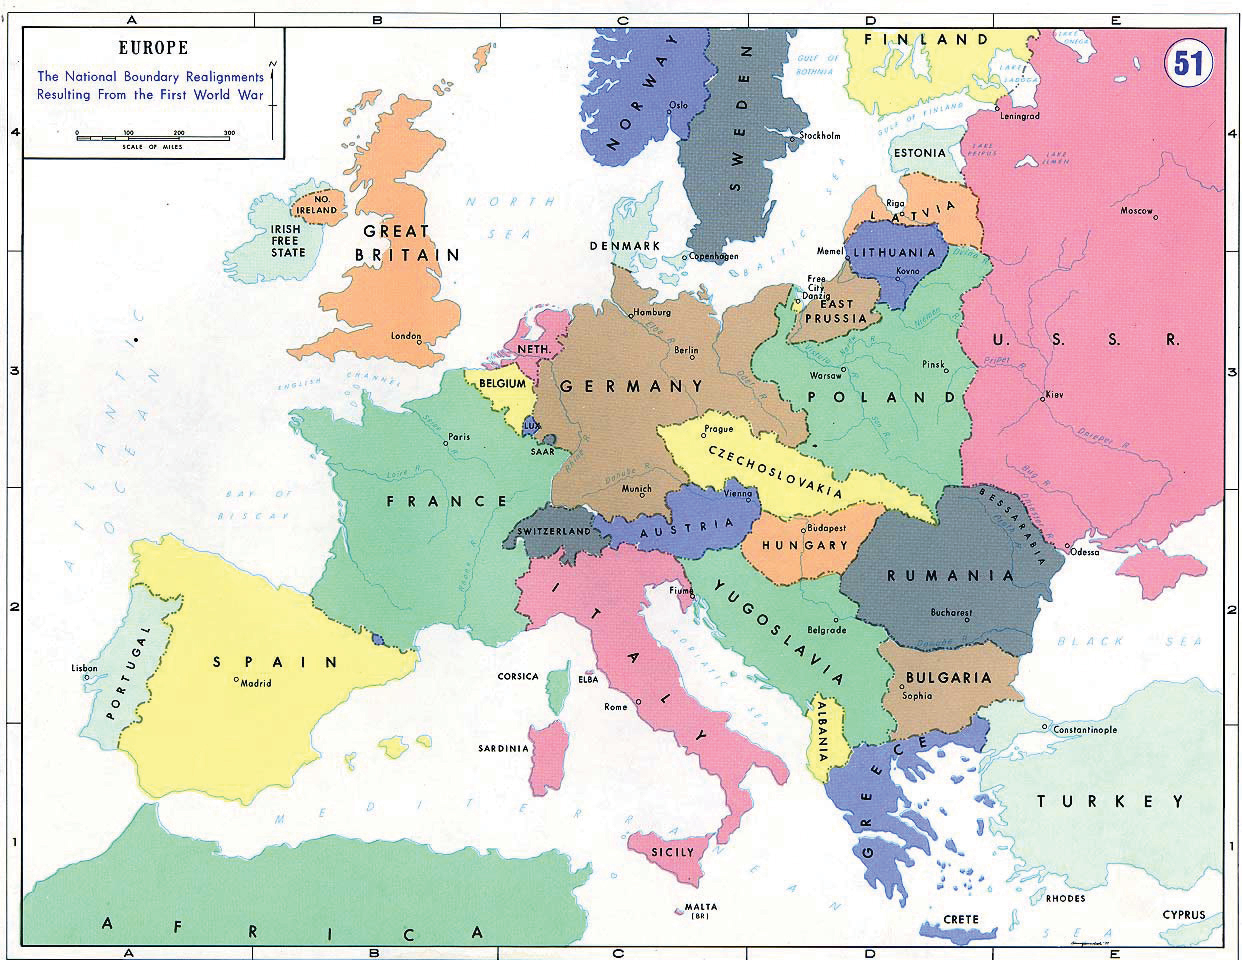 1920s Europe Map.The Late Progressive Era And World War 1912 1920